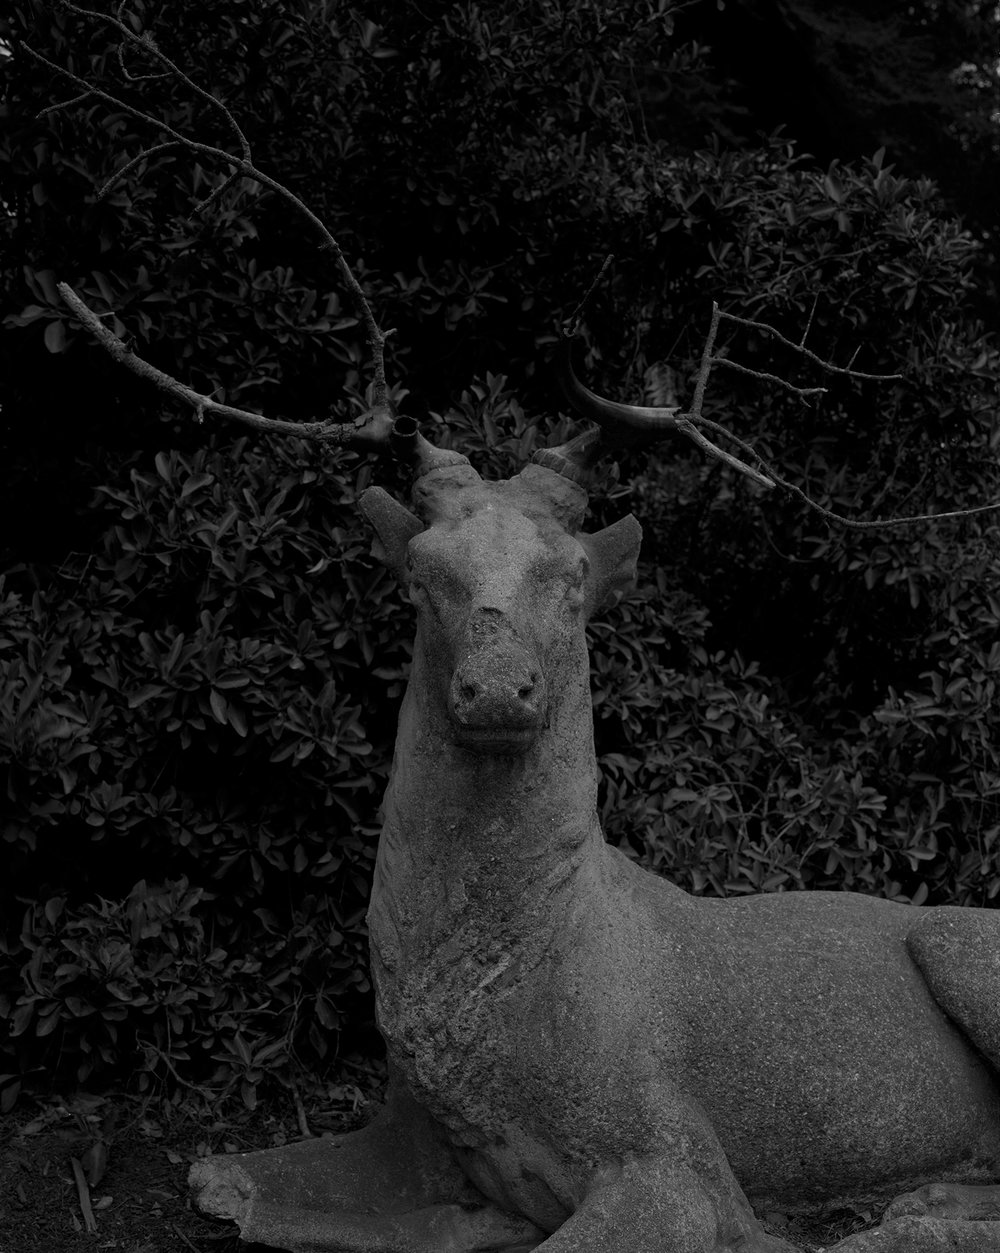 Actaeon as Stag  , 2015 Silver gelatin print 37 x 29 inches Ed: 3 + 2AP